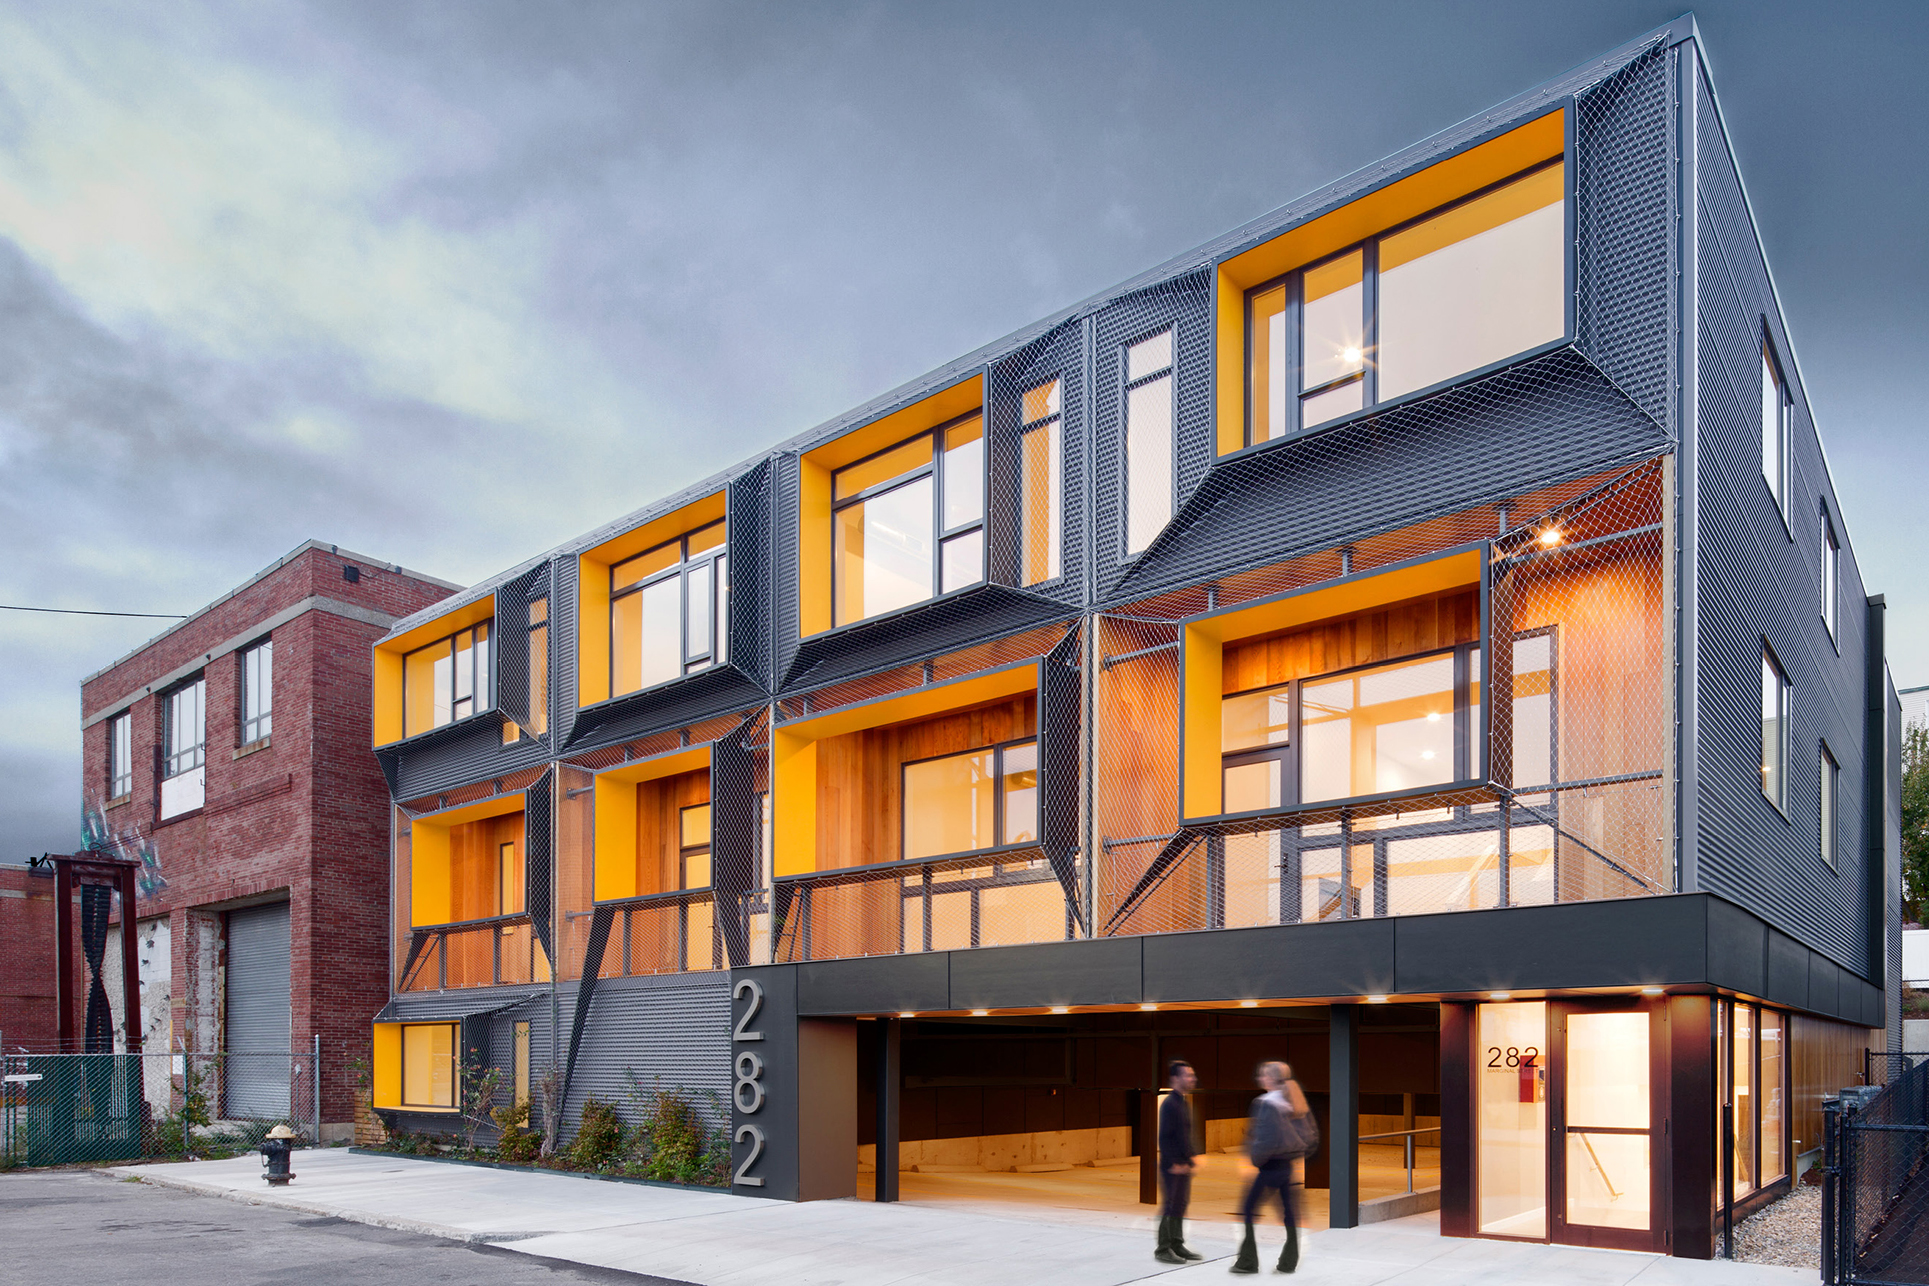 Marginal street lofts residential architect merge for Residential architecture design